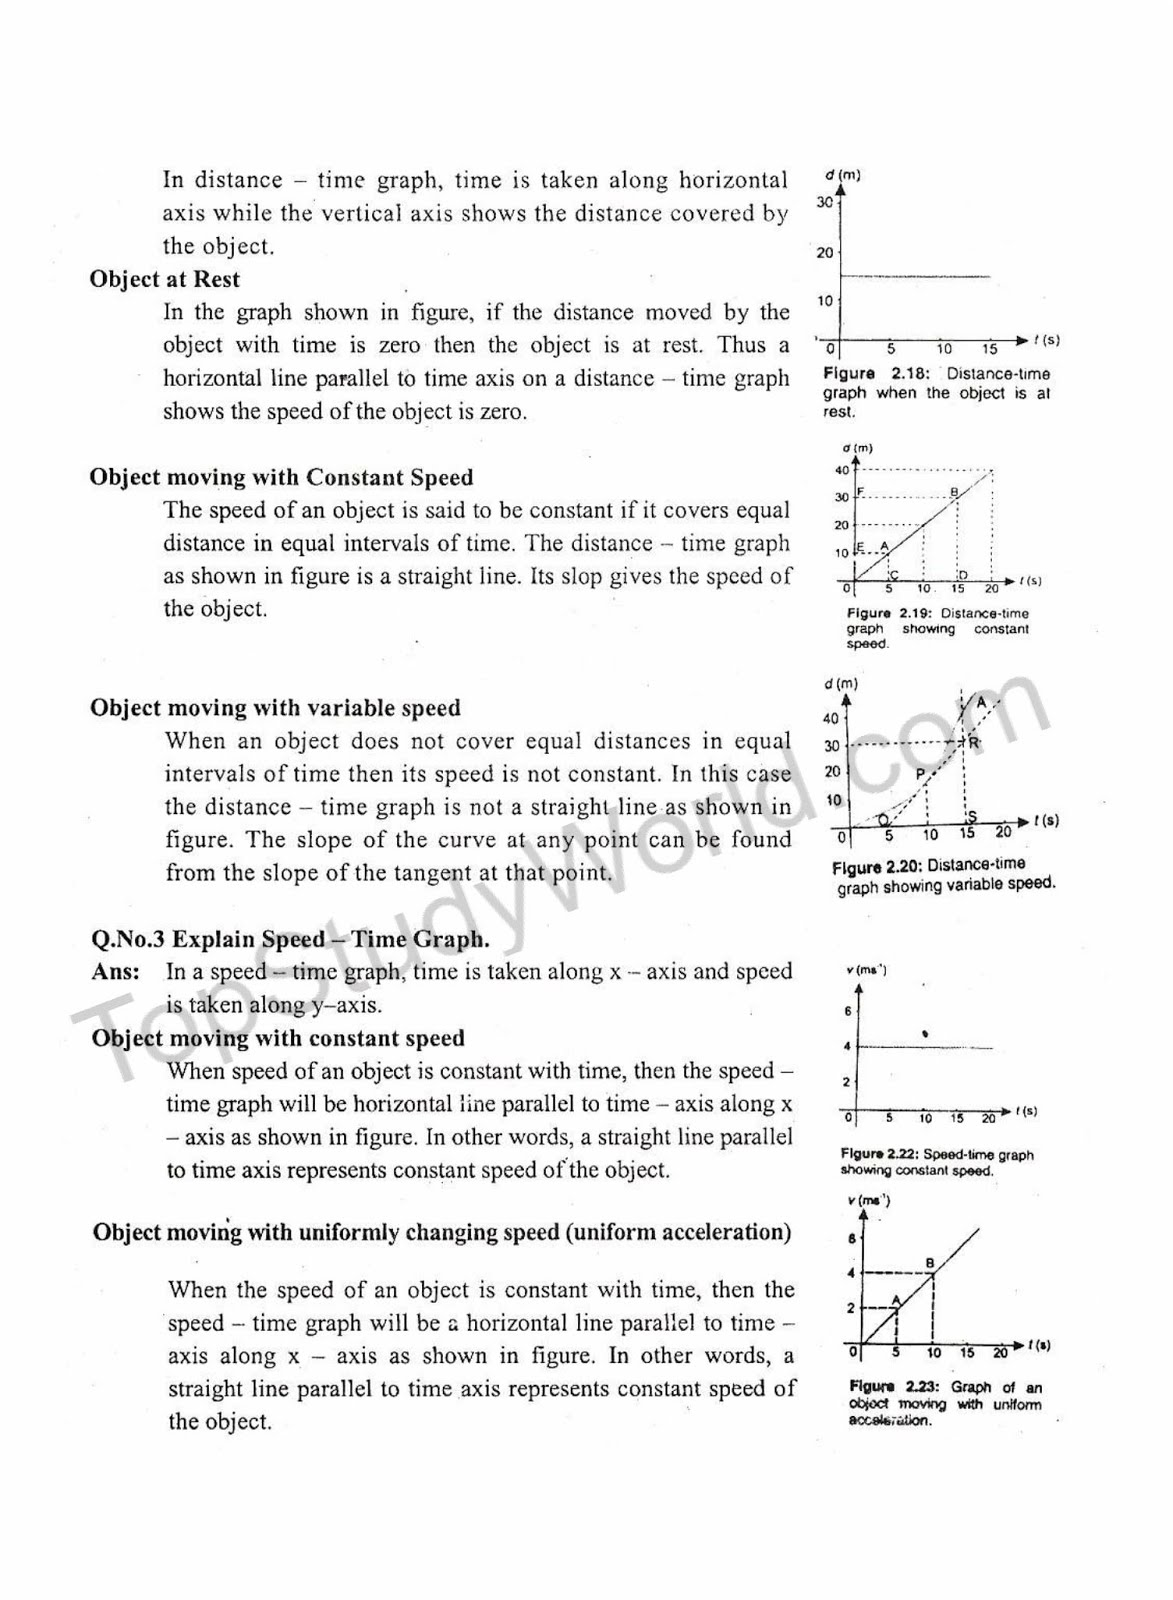 Kips Textbook Excercise Of Kinematics For 9th Class Physics